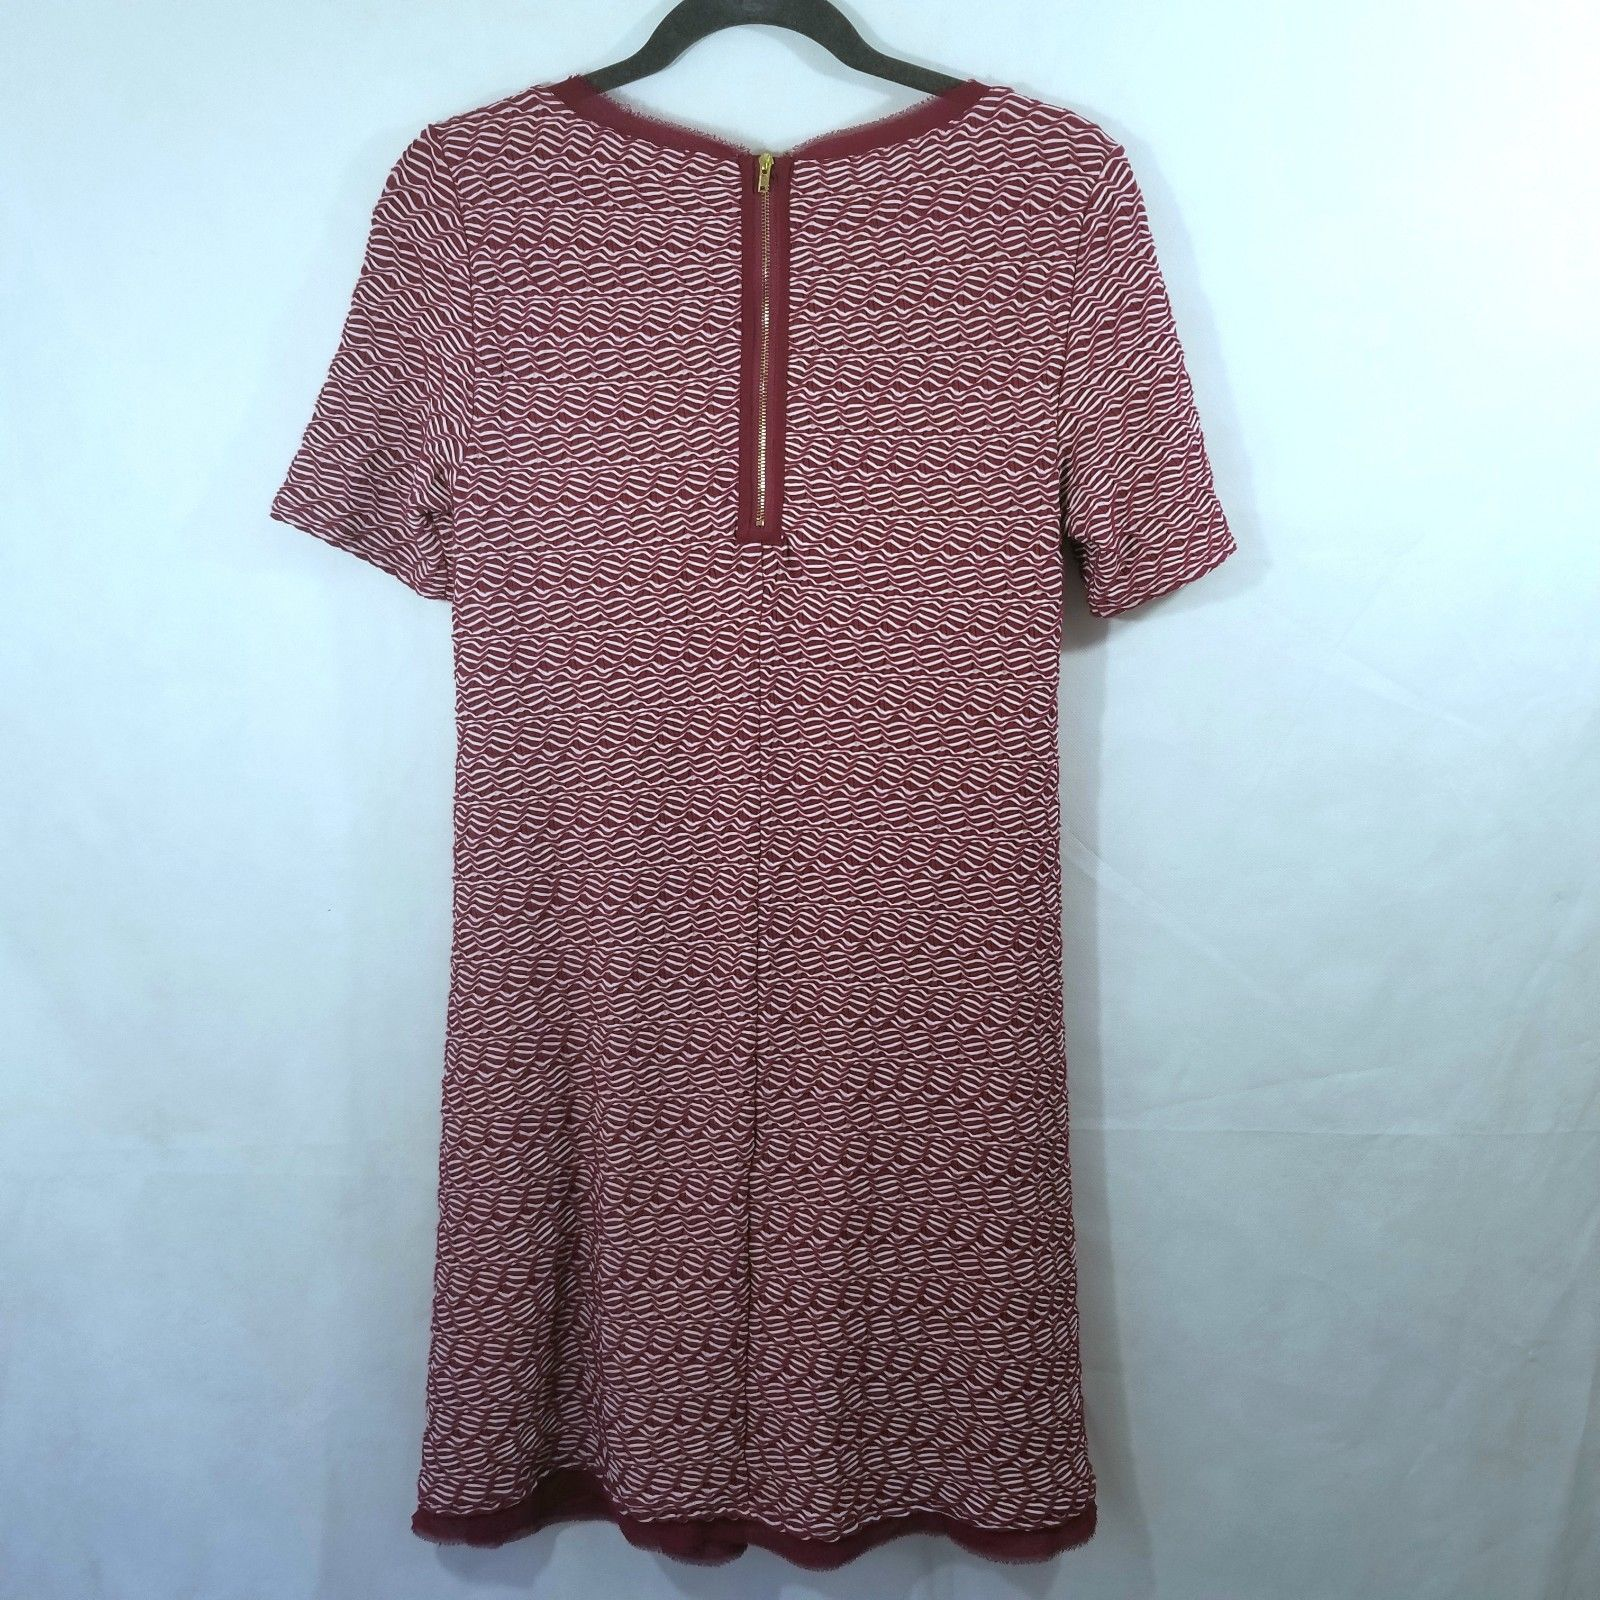 Maeve Anthropologie Burgundy Patterned Fit and Flare Dress Small